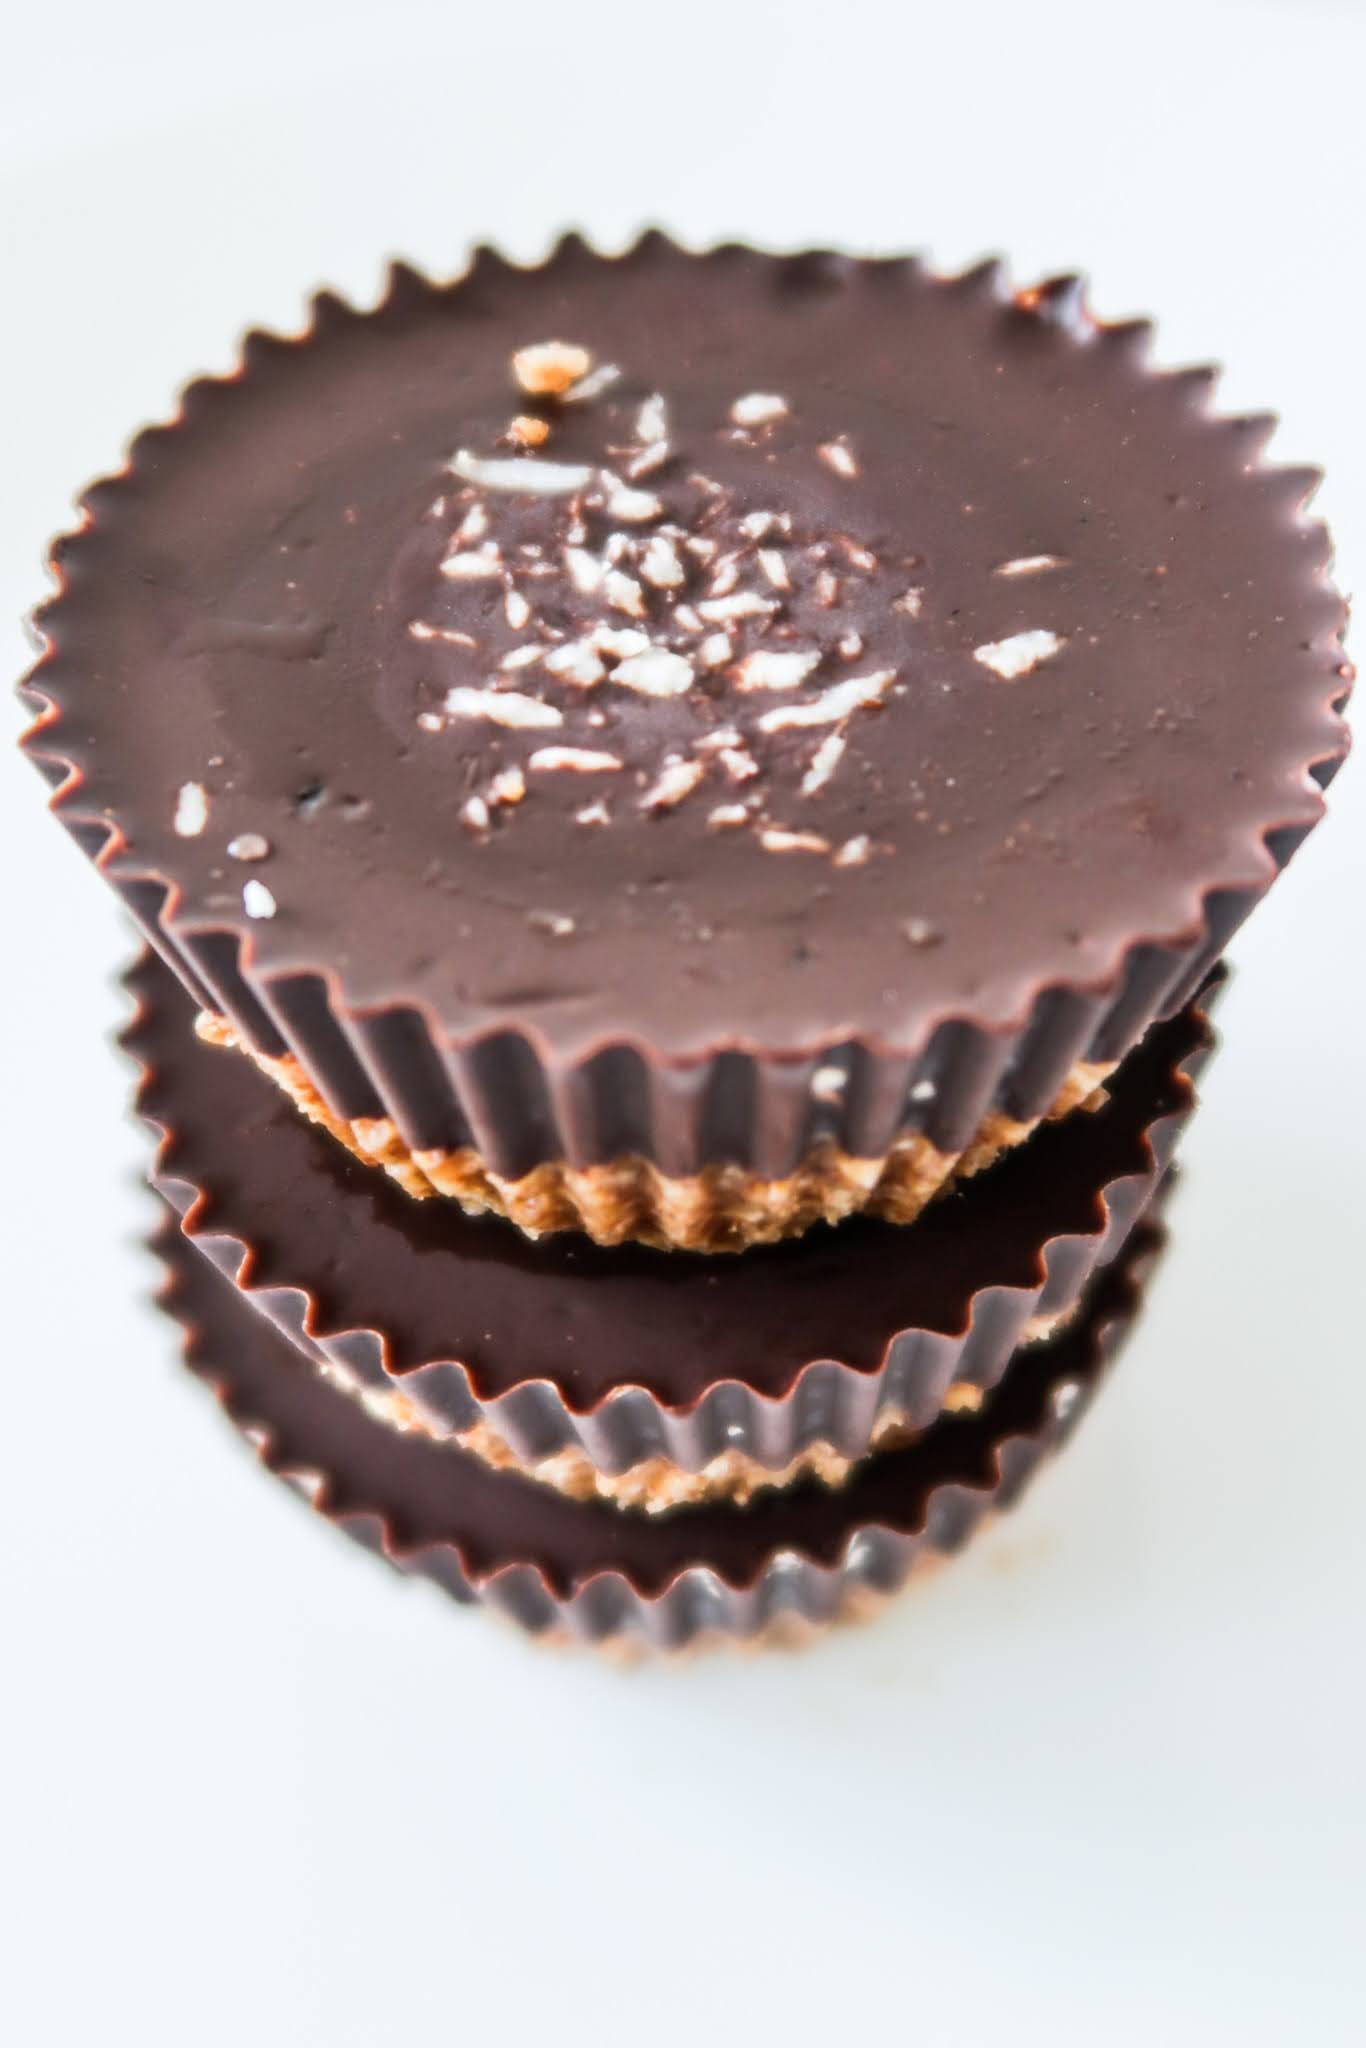 If you're looking for some easy healthy breakfast ideas that you can make ahead and eat on the go, you've just found the perfect easy breakfast recipe! These are some healthy breakfast peanut butter cups that are filling and actually good for you! Perfect easy snack idea on the go too!